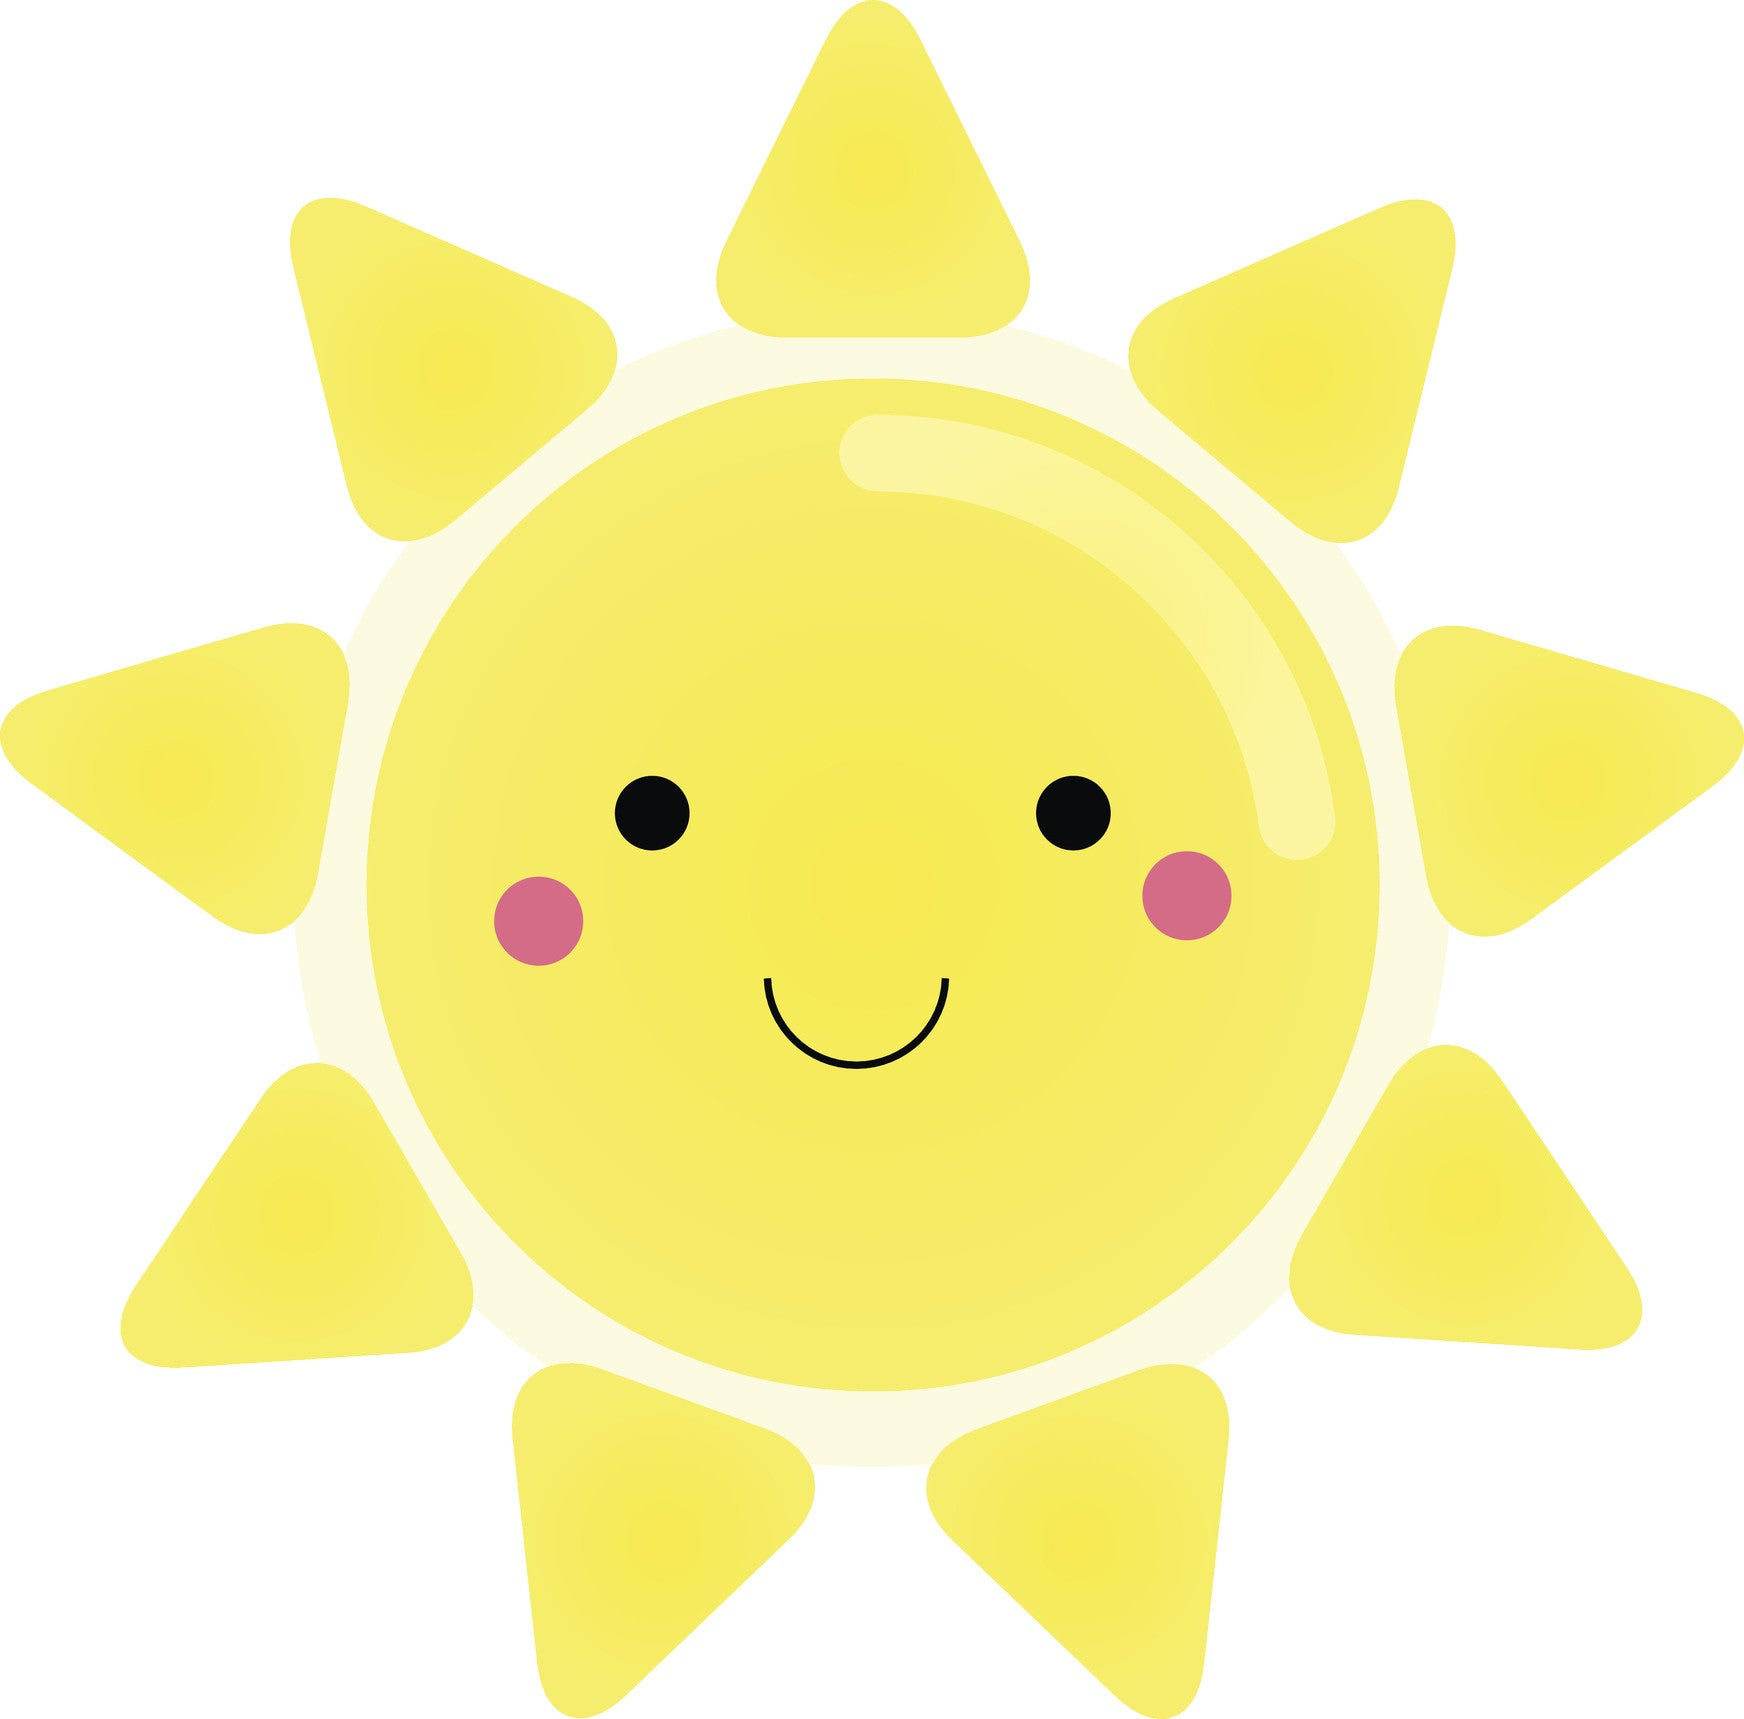 Cute Happy Nursery Kindergarten Sun Emoji Cartoon Vinyl Decal Sticker